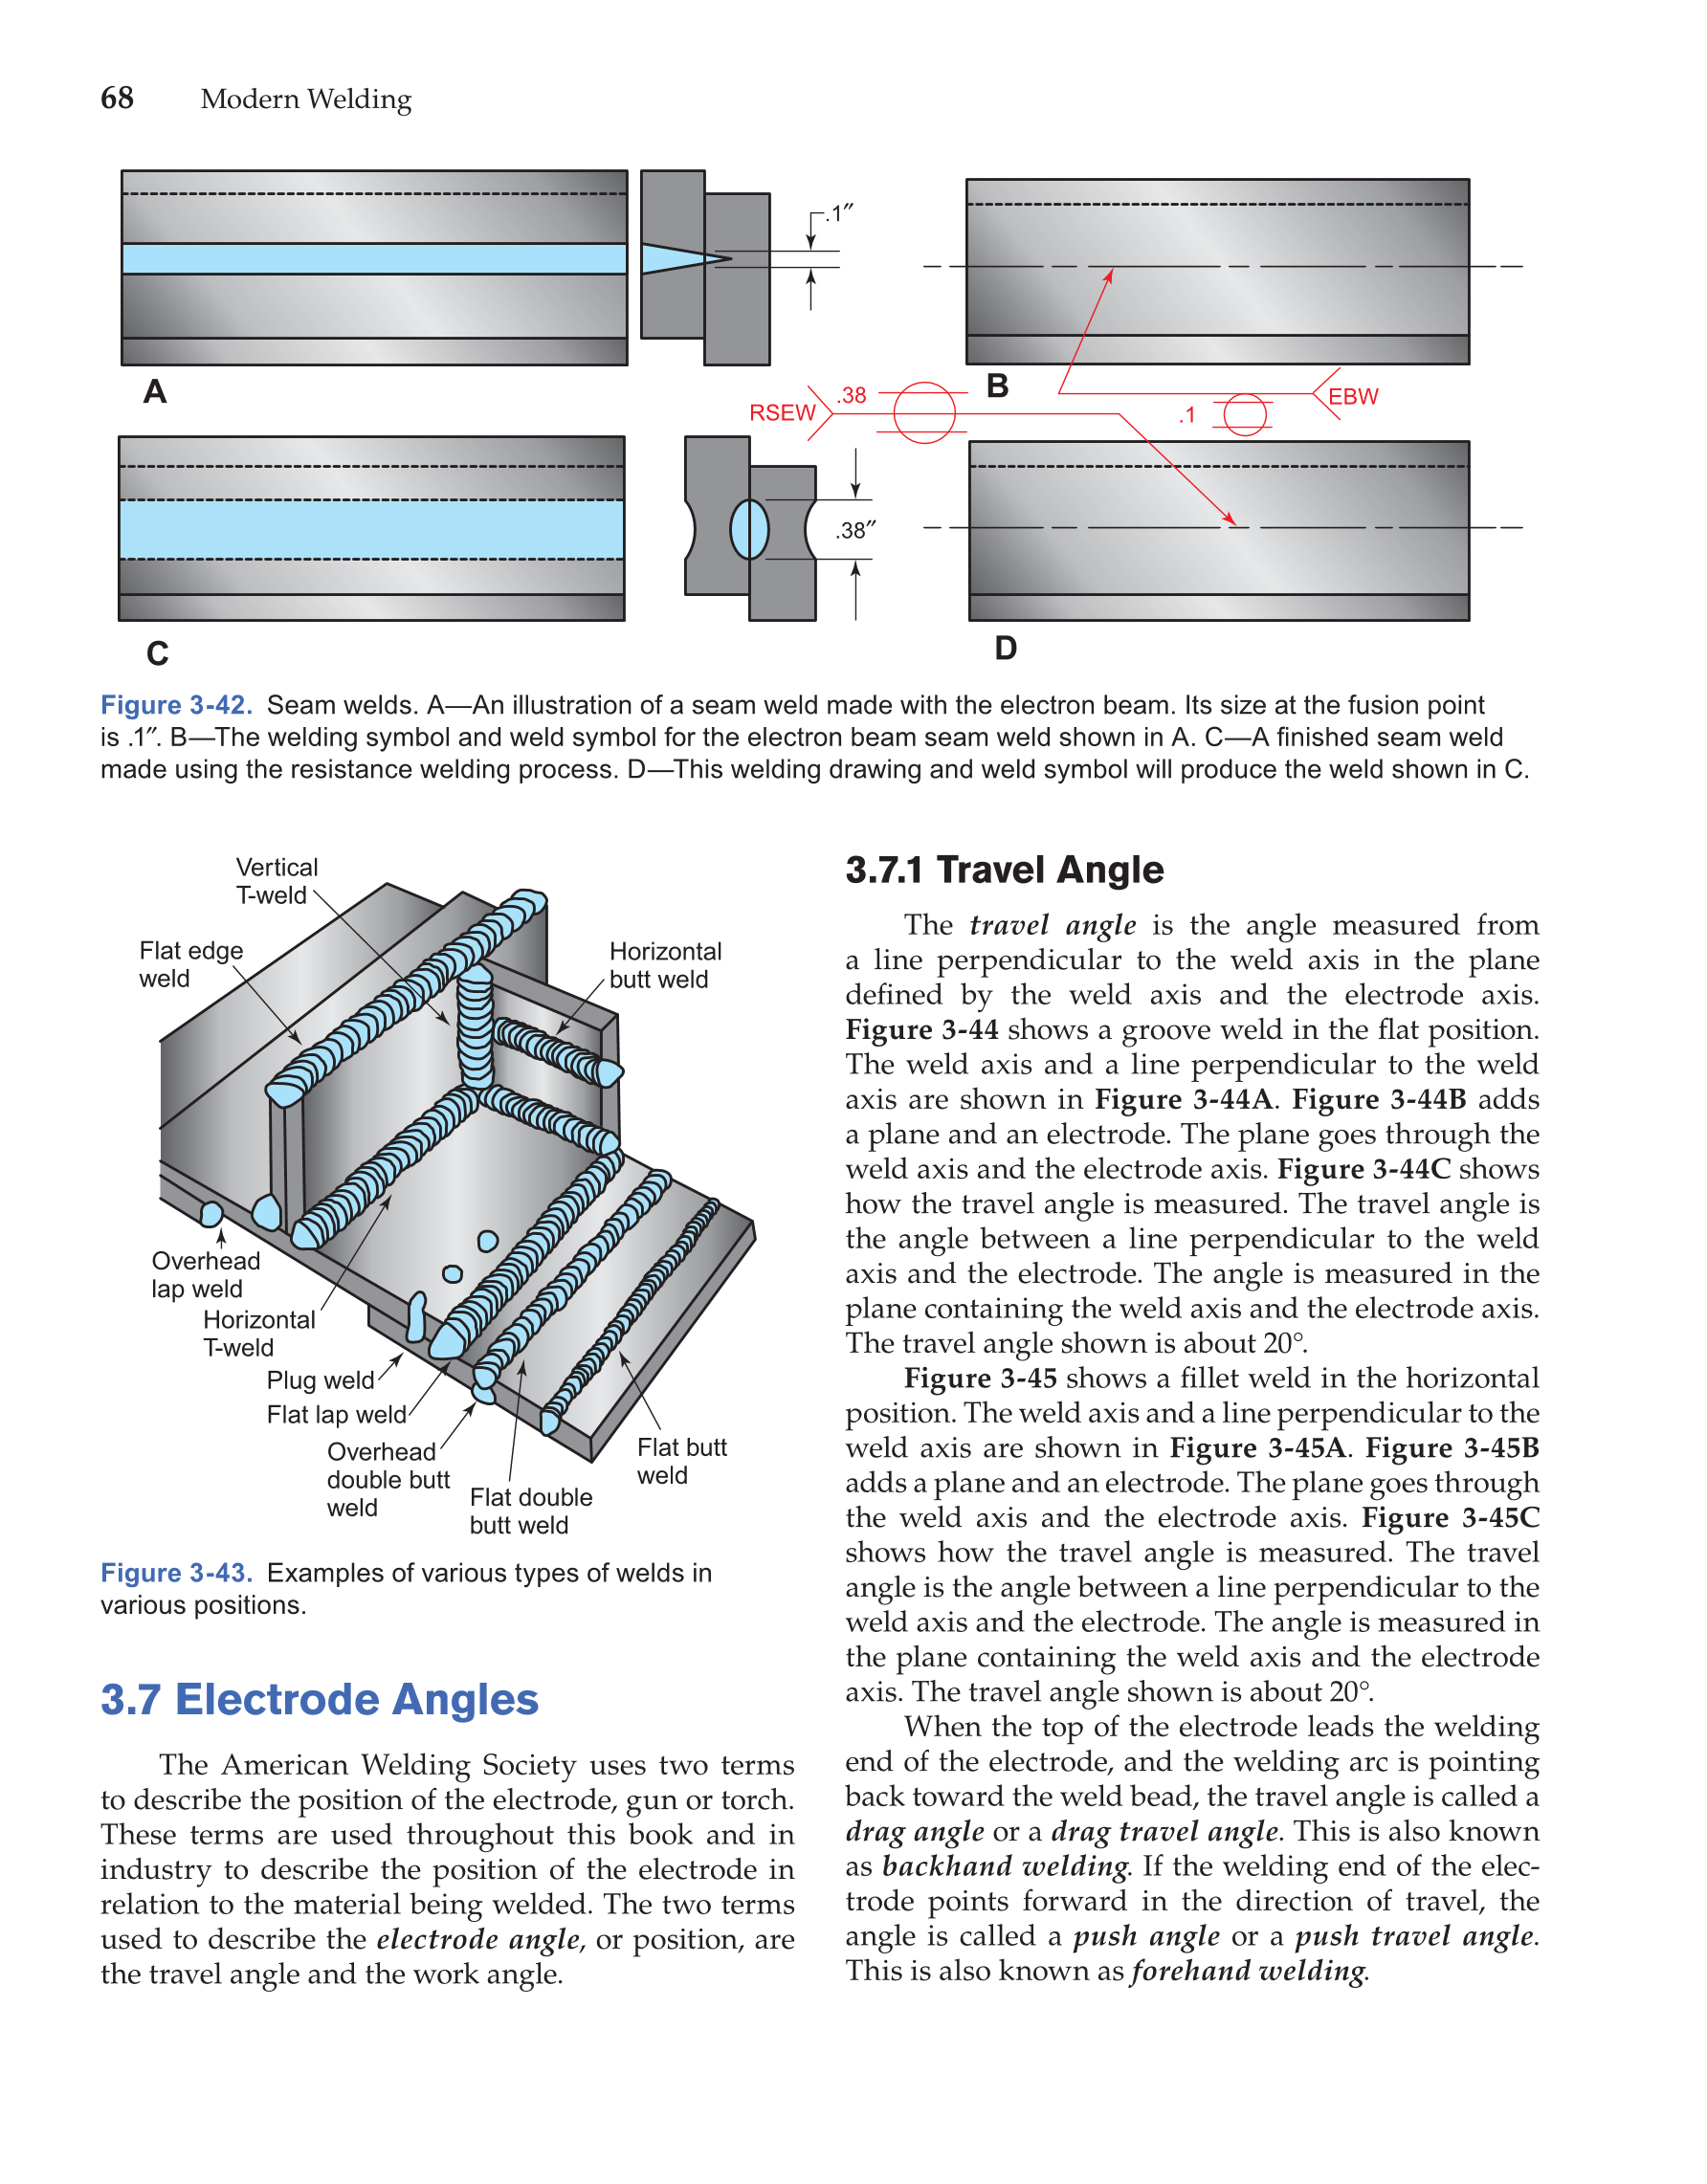 Printable Modern Welding 11th Edition Page 68 Resistance Diagram